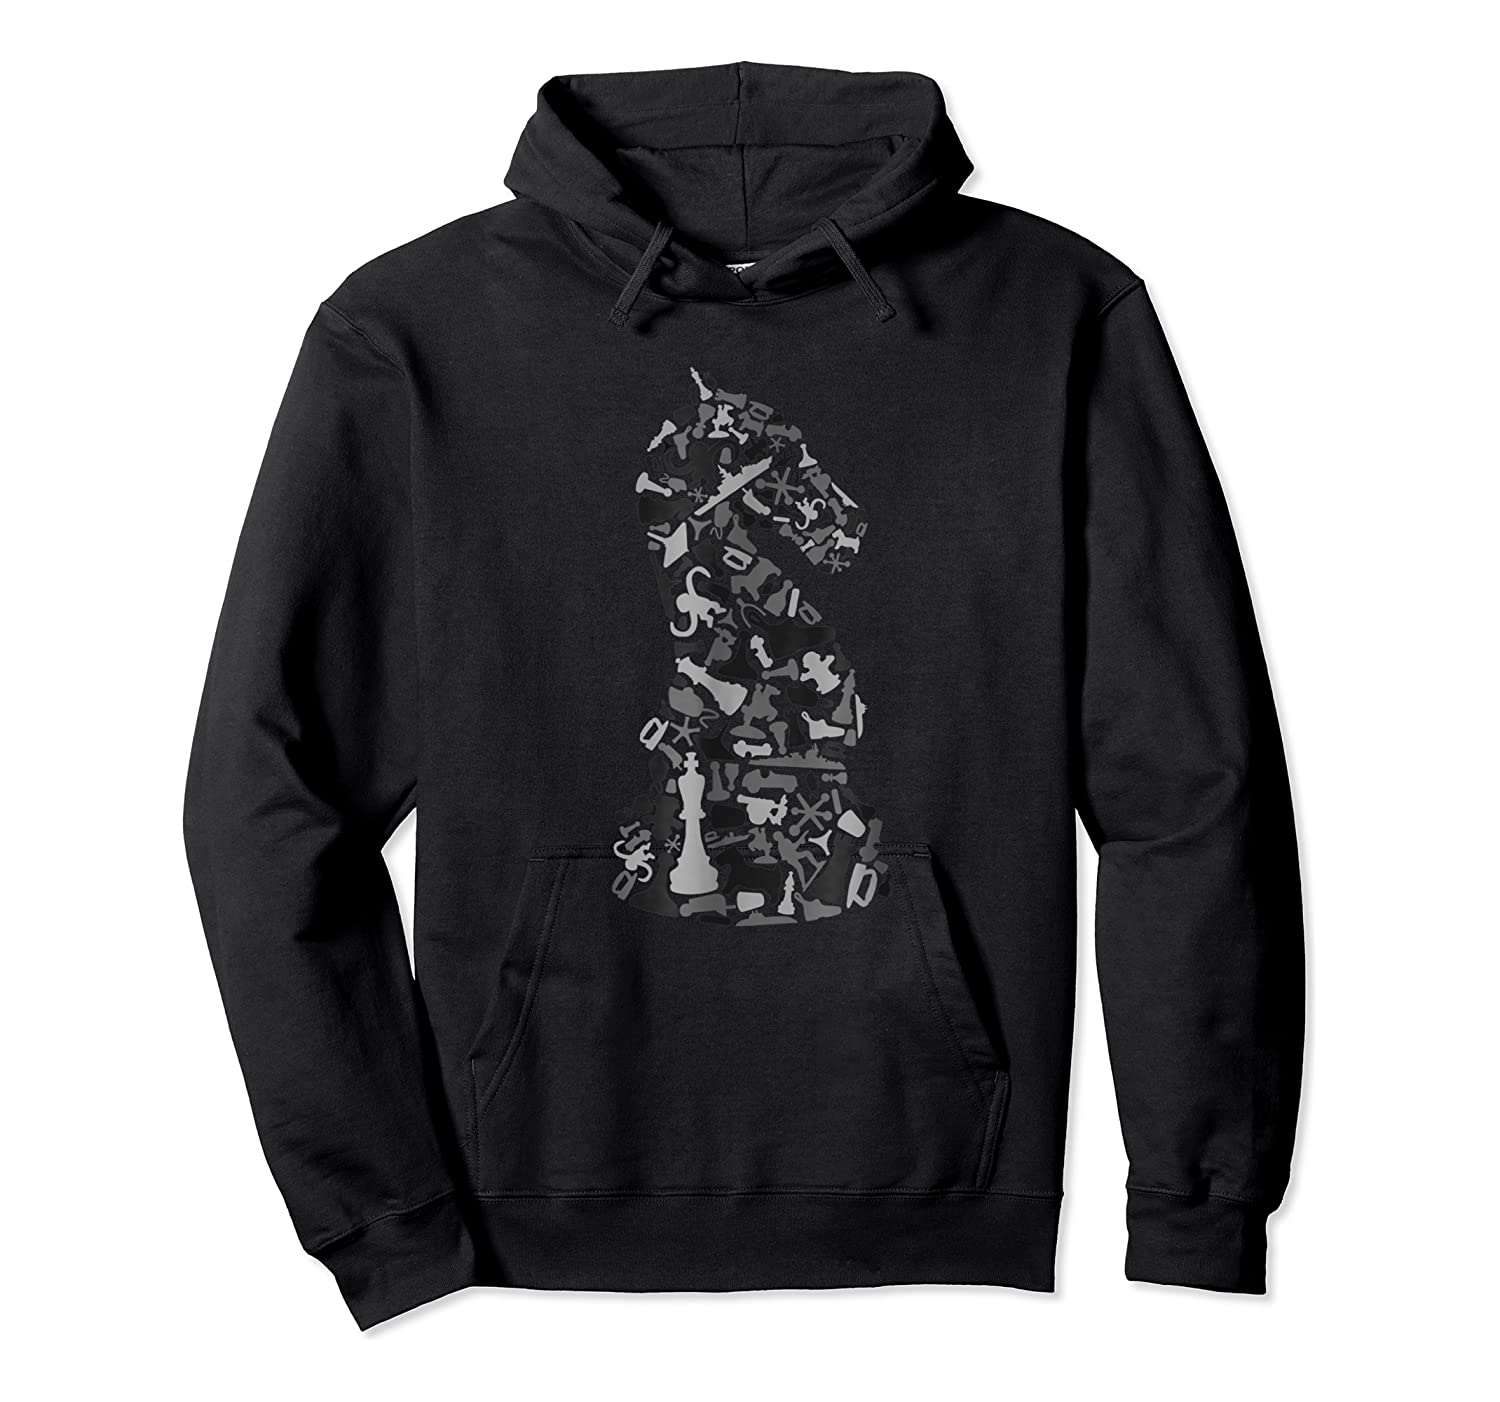 Woot Game Time Shirts Unisex Pullover Hoodie